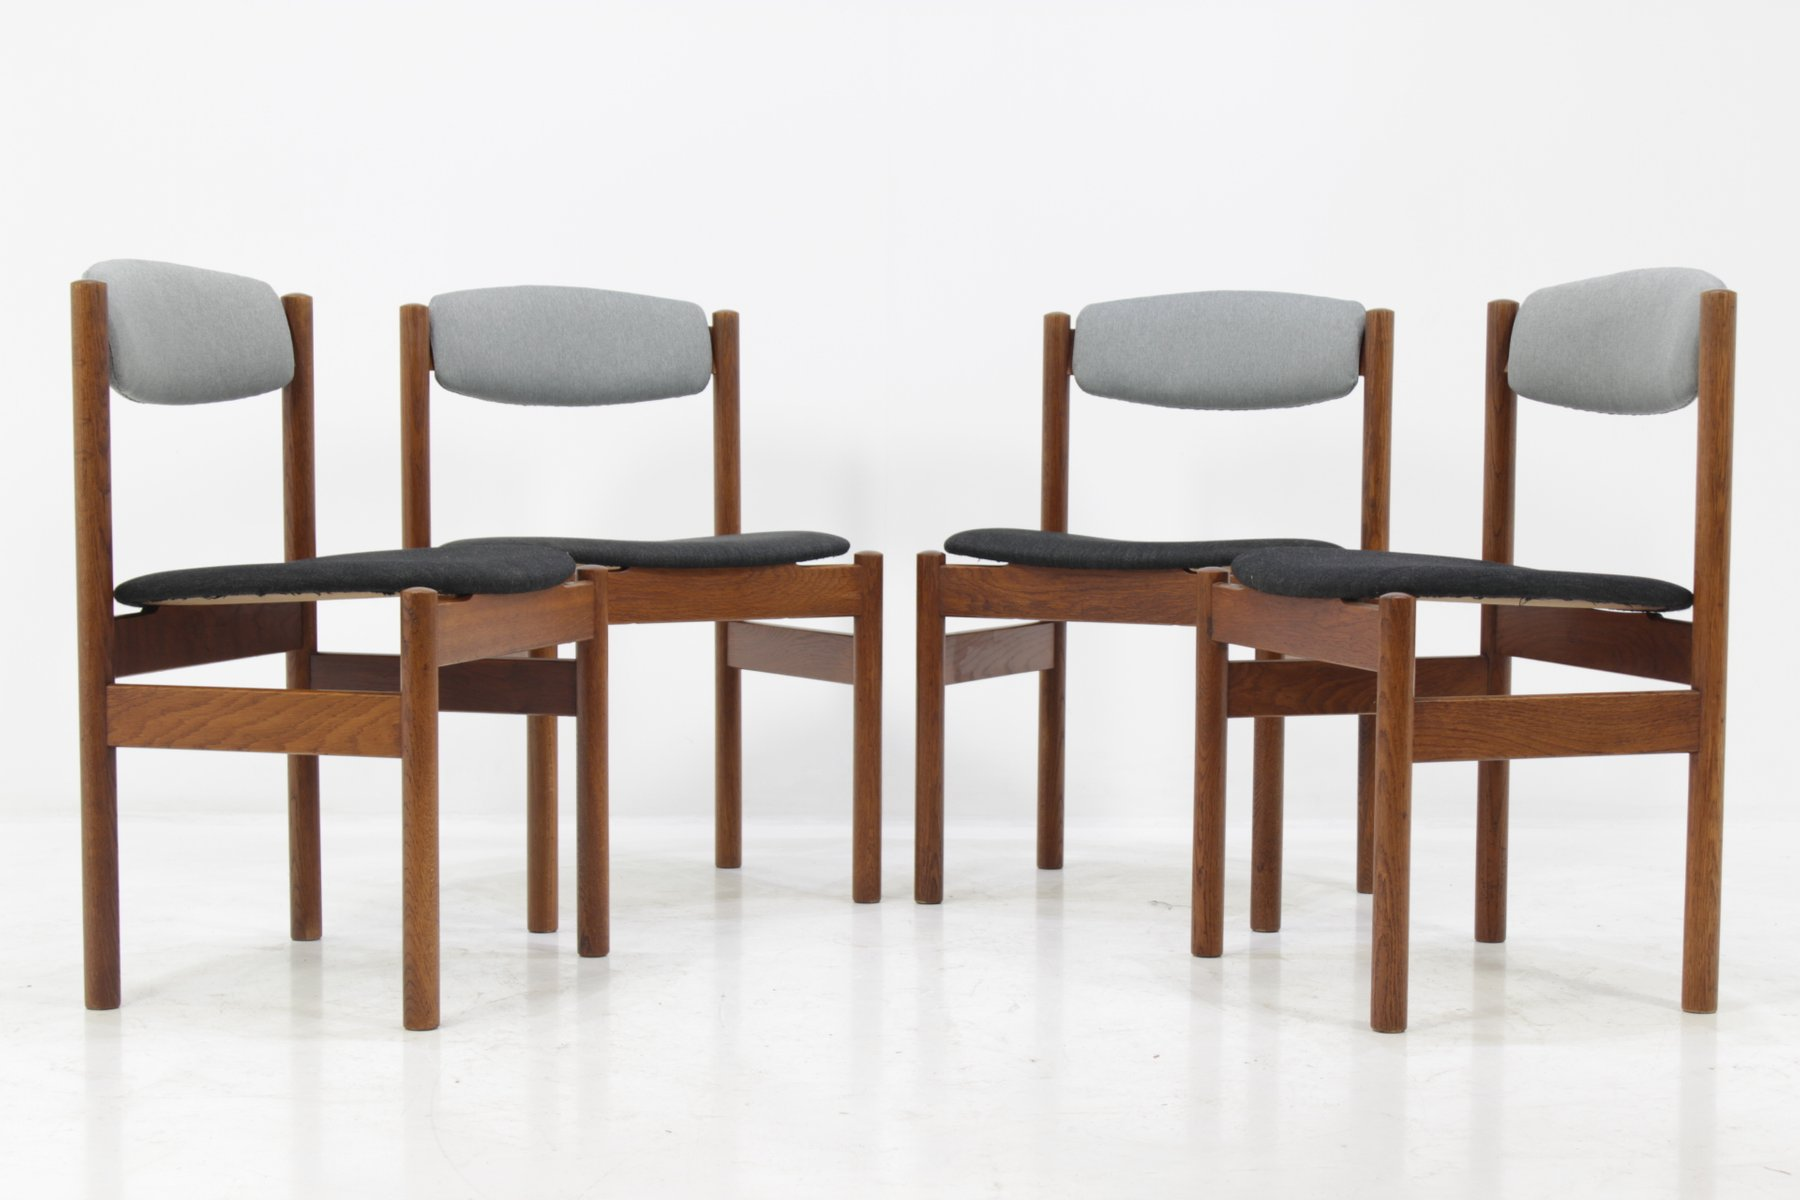 danish oak dining chairs from fdb mà bler 1960s set of 4 for sale